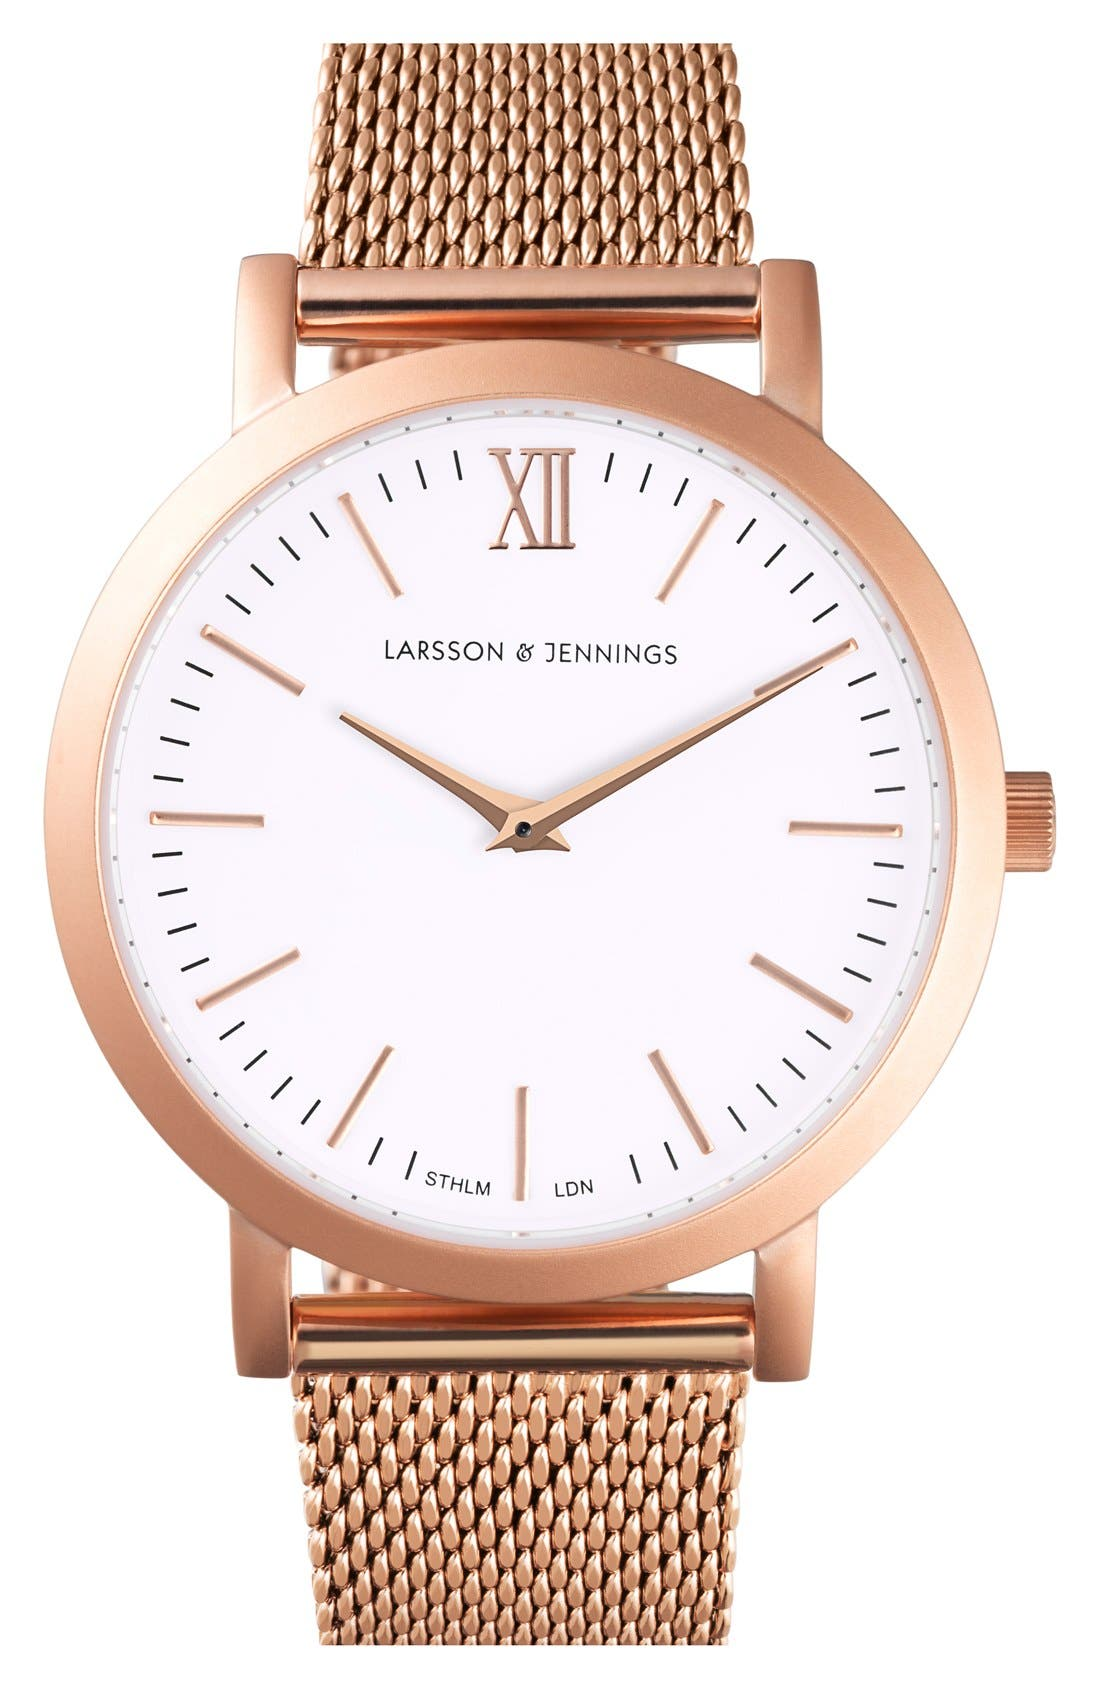 LARSSON & JENNINGS 'Lugano' Mesh Strap Watch, 33mm